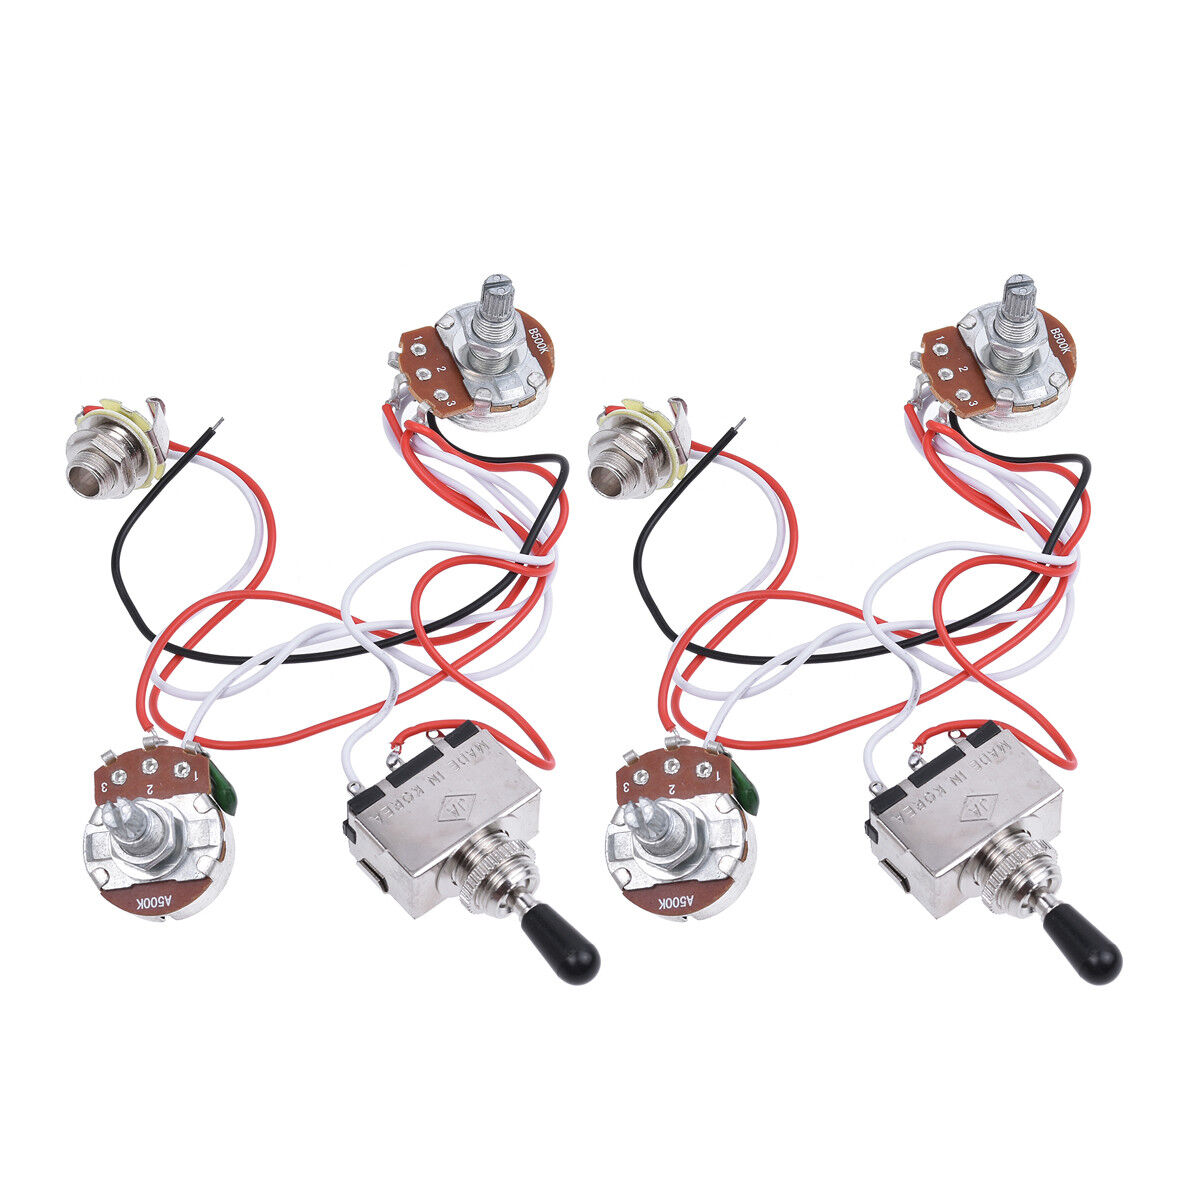 hight resolution of details about guitar wiring harness kit 3 way toggle switch 1v1t 500k pots 2 pcs